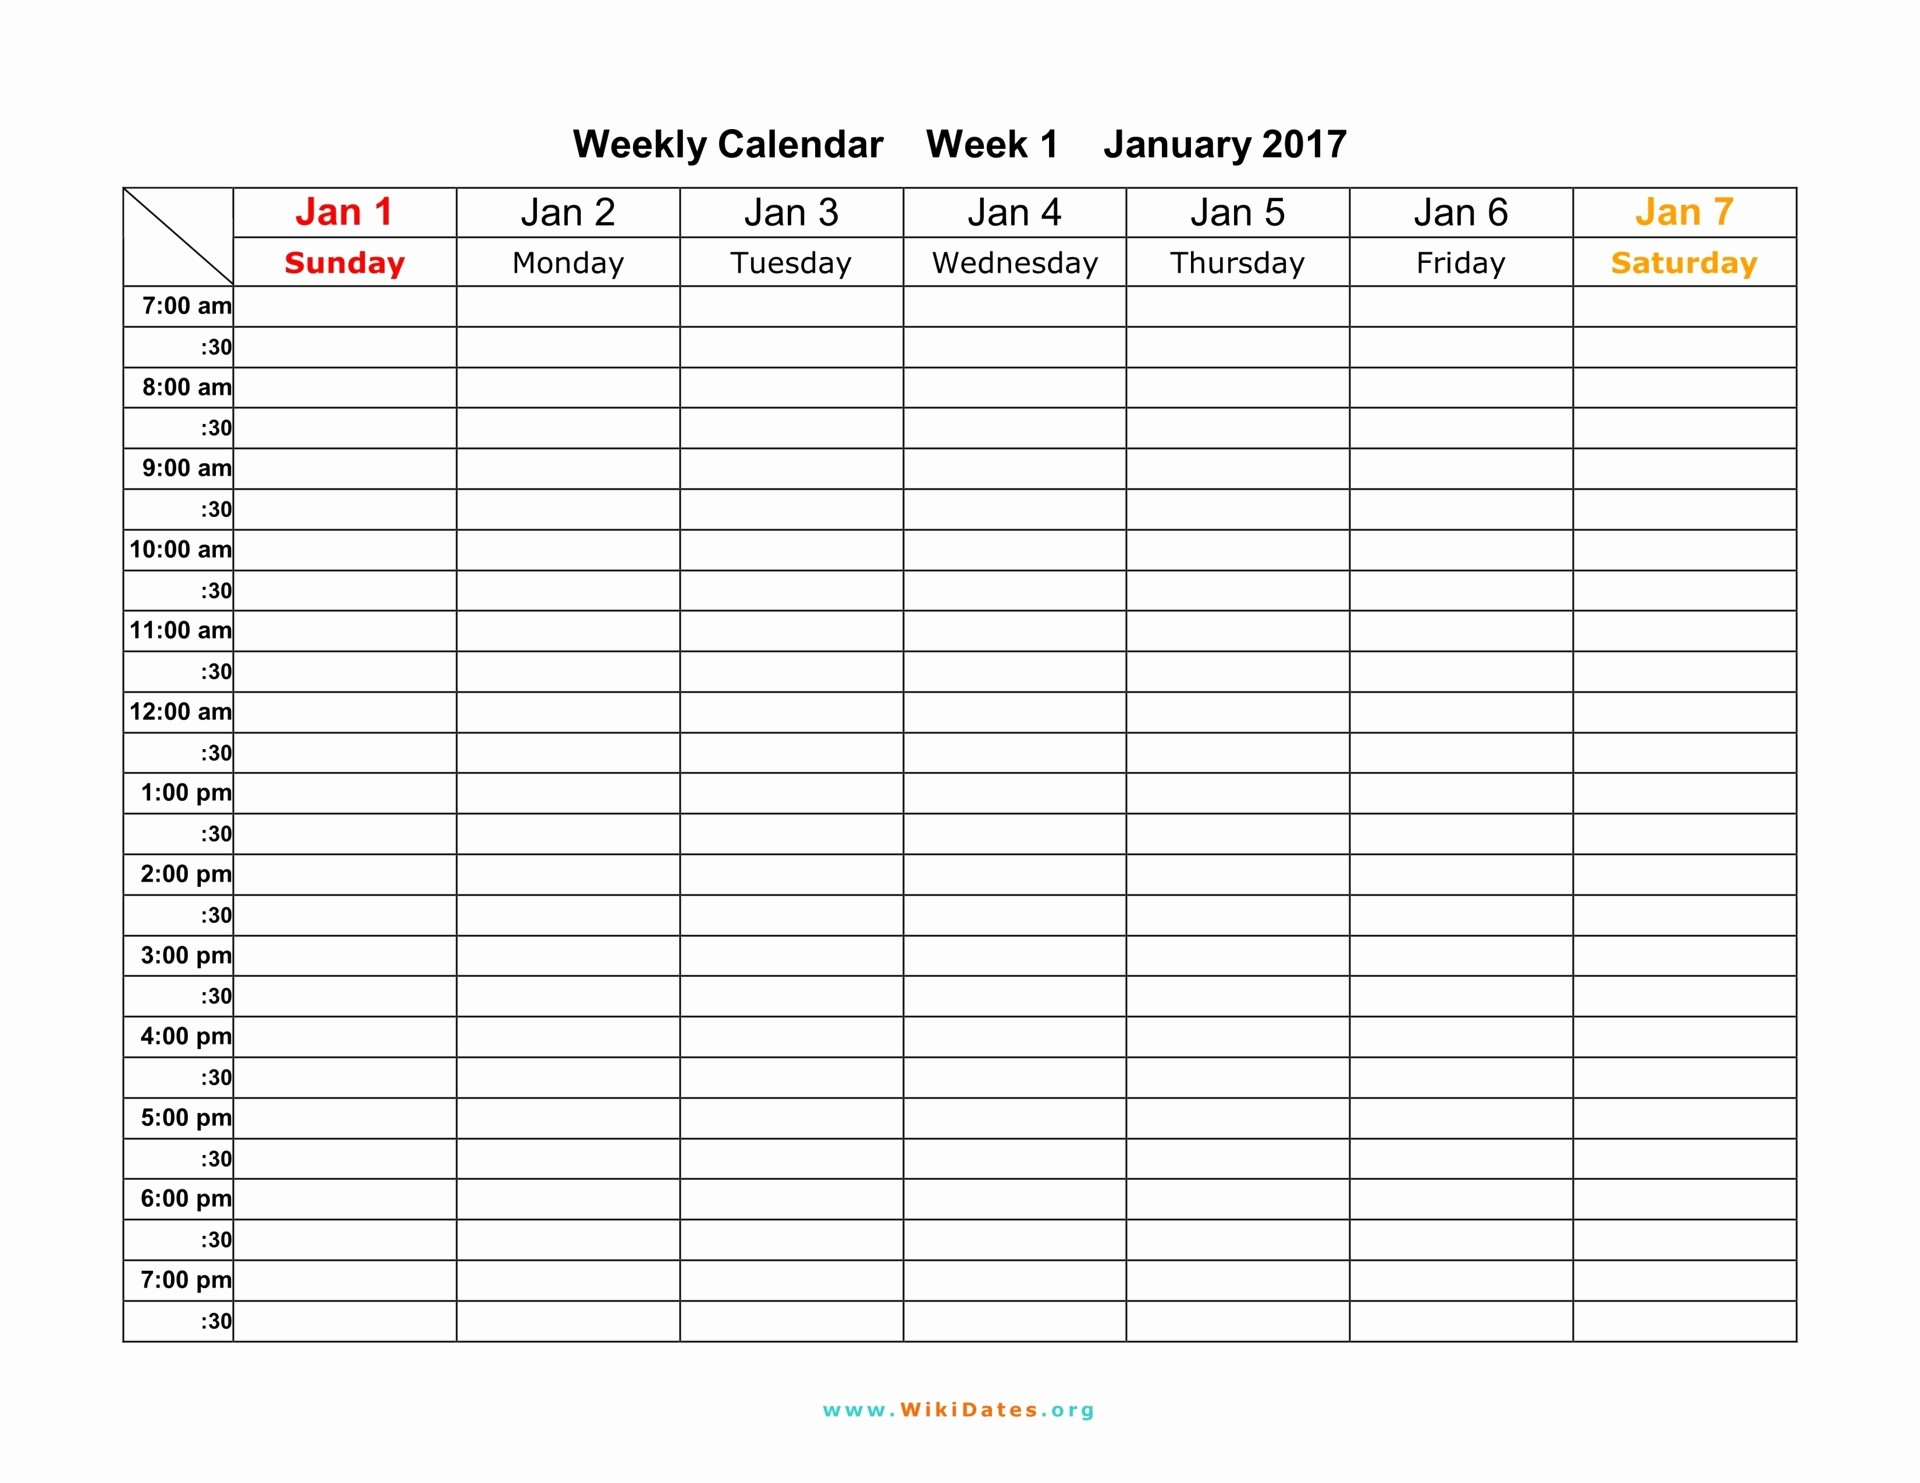 Weekly Work Schedule Template Word Luxury Weekly Calendar Download Weekly Calendar 2017 and 2018